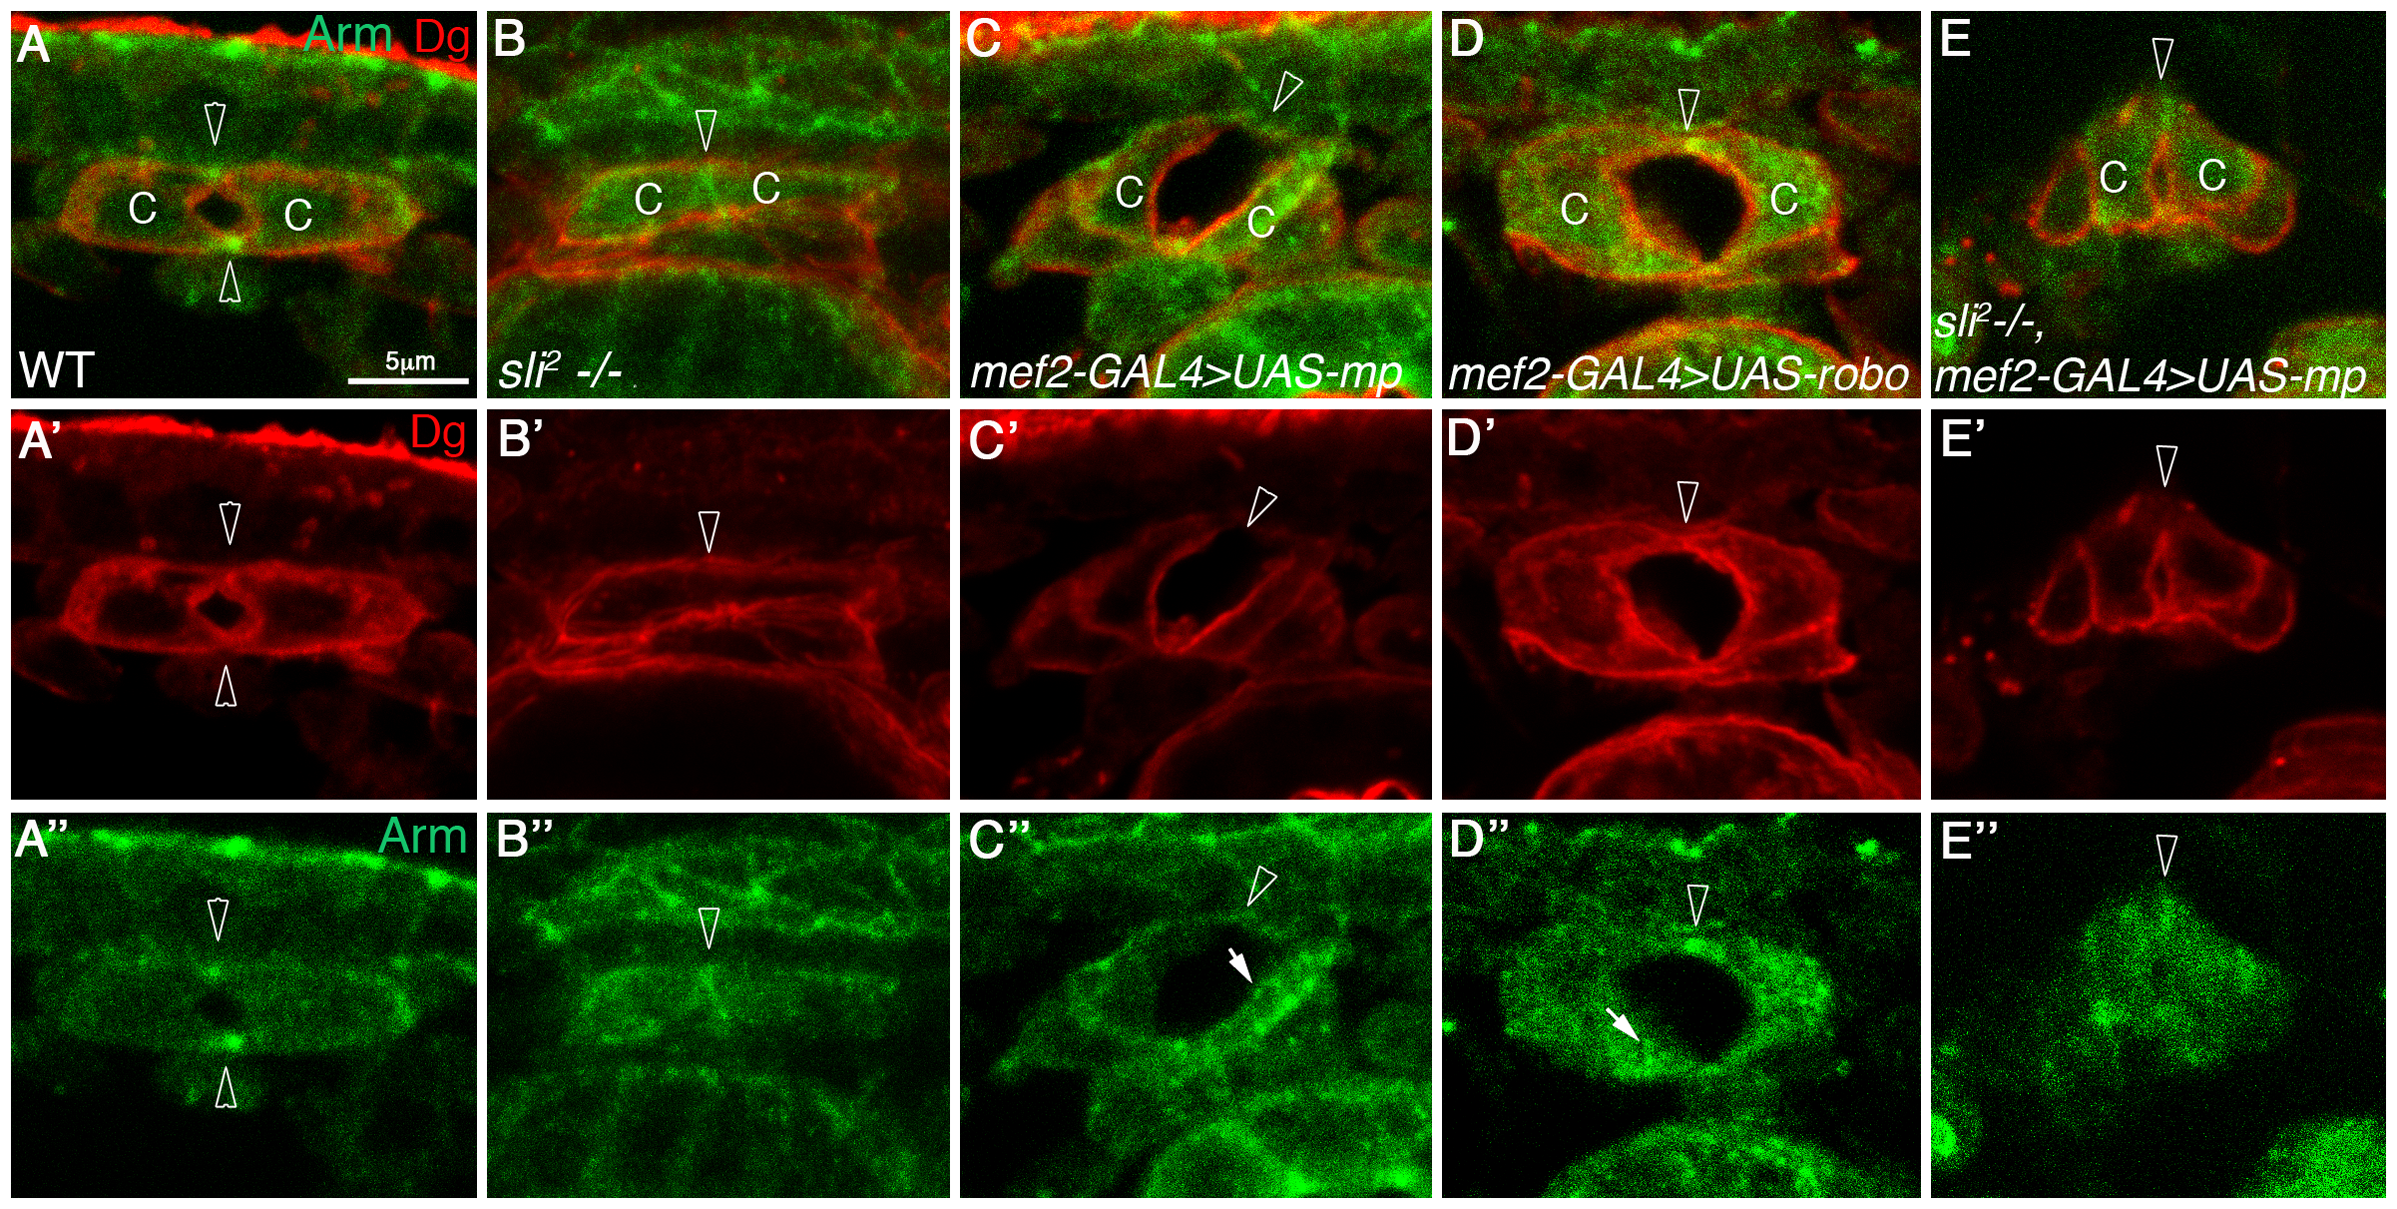 Mp activity in cardioblasts depends on Slit.